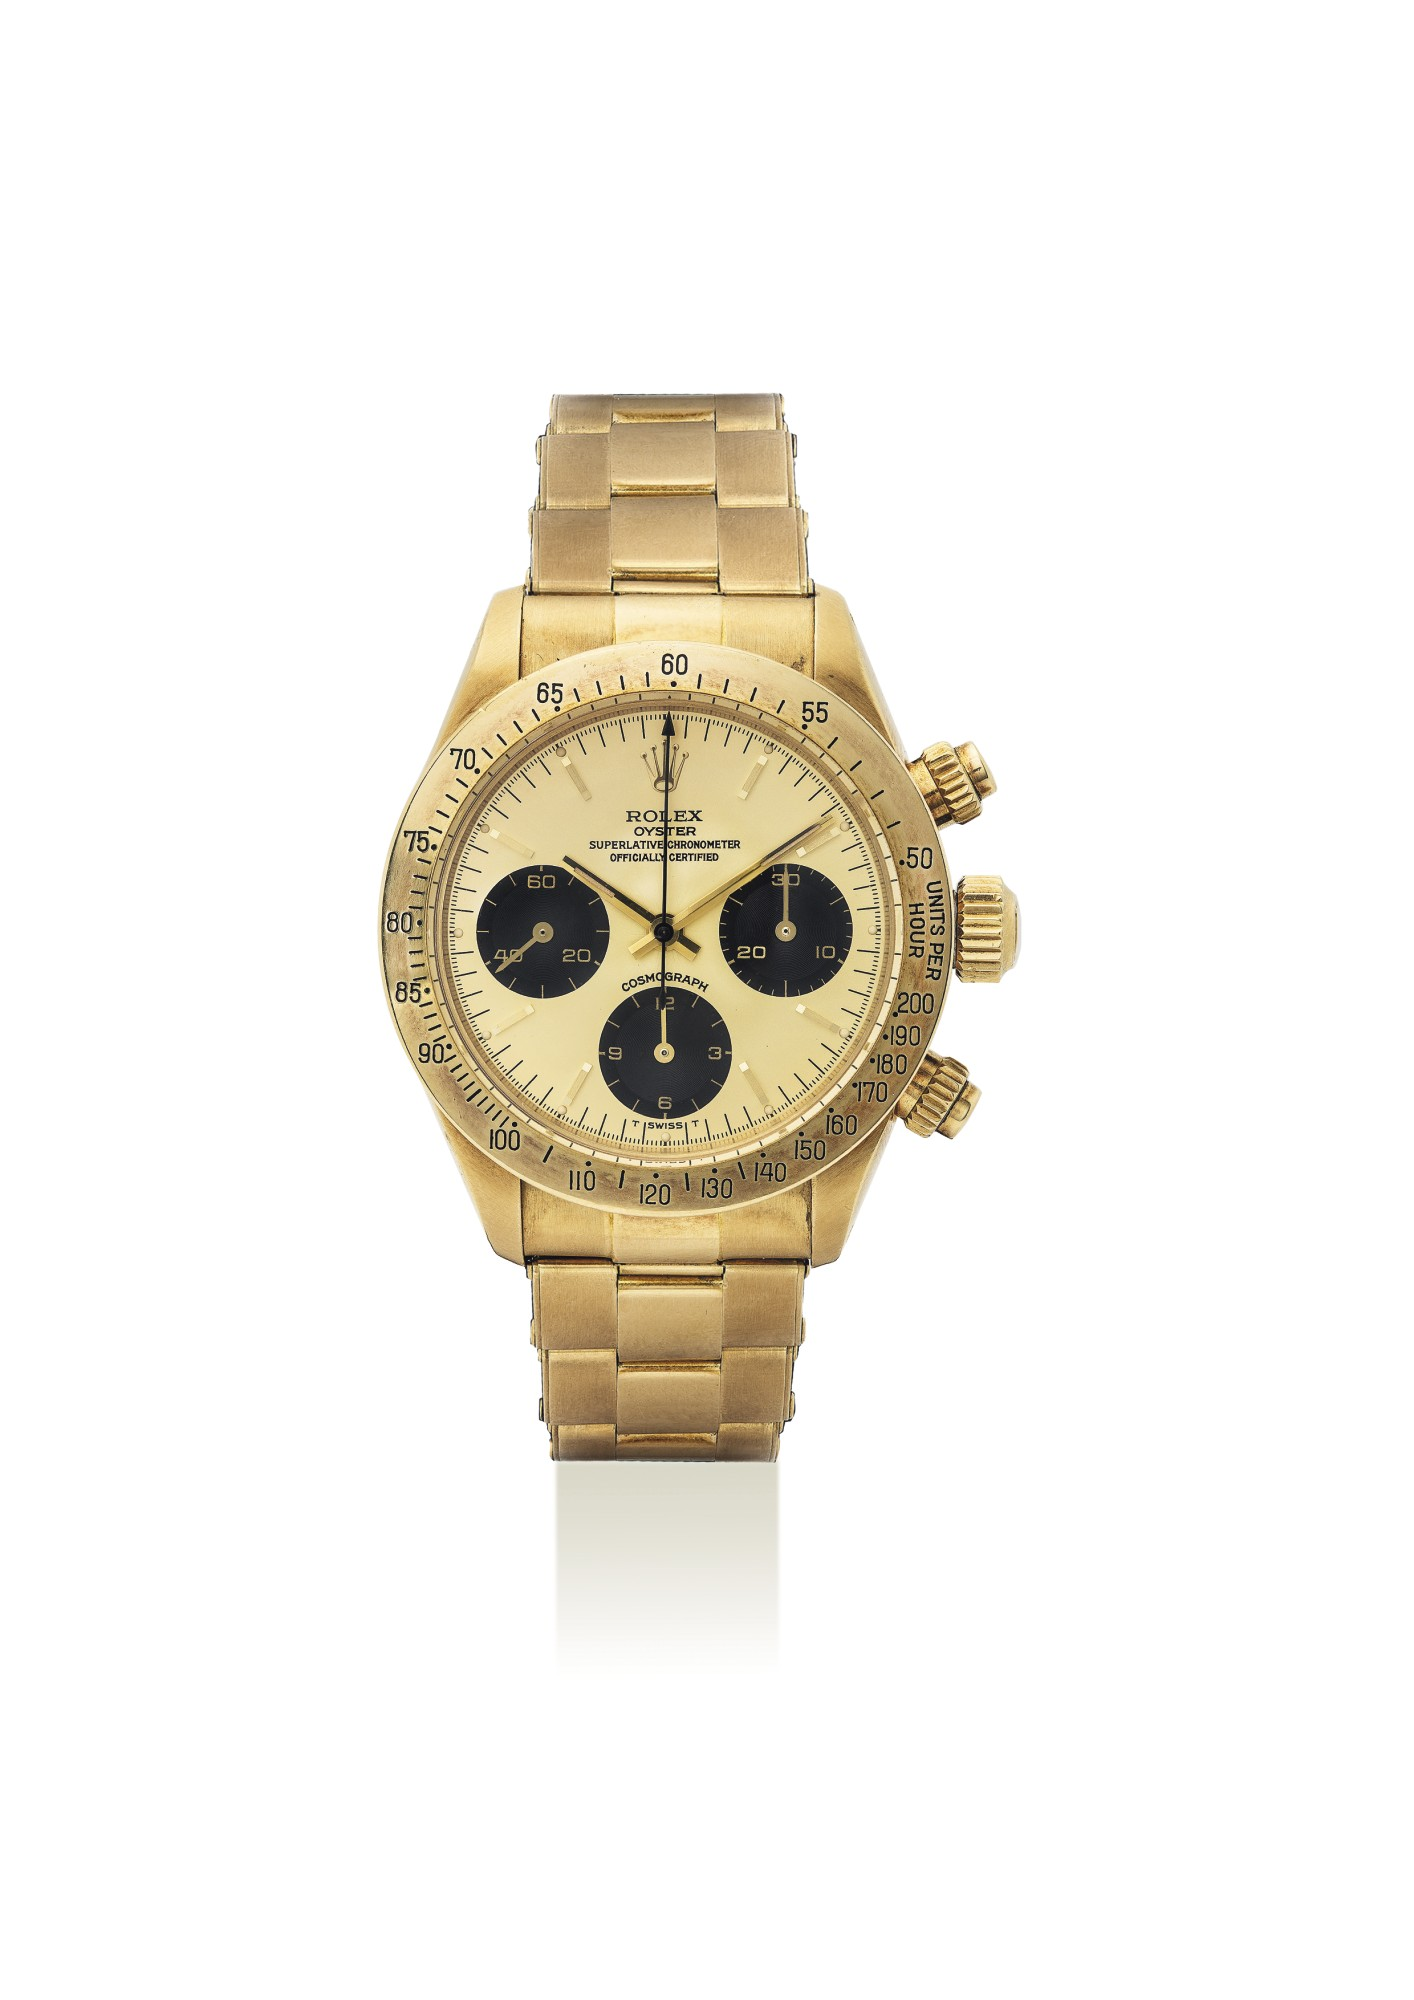 ROLEX._AN_EXTREMELY_FINE_AND_VERY_RARE_18K_GOLD_CHRONOGRAPH_WRISTWATCH_WITH_CHAMPAGNE_DIAL,_BRACELET,_ORIGINAL_GUARANTEE_AND_BOX